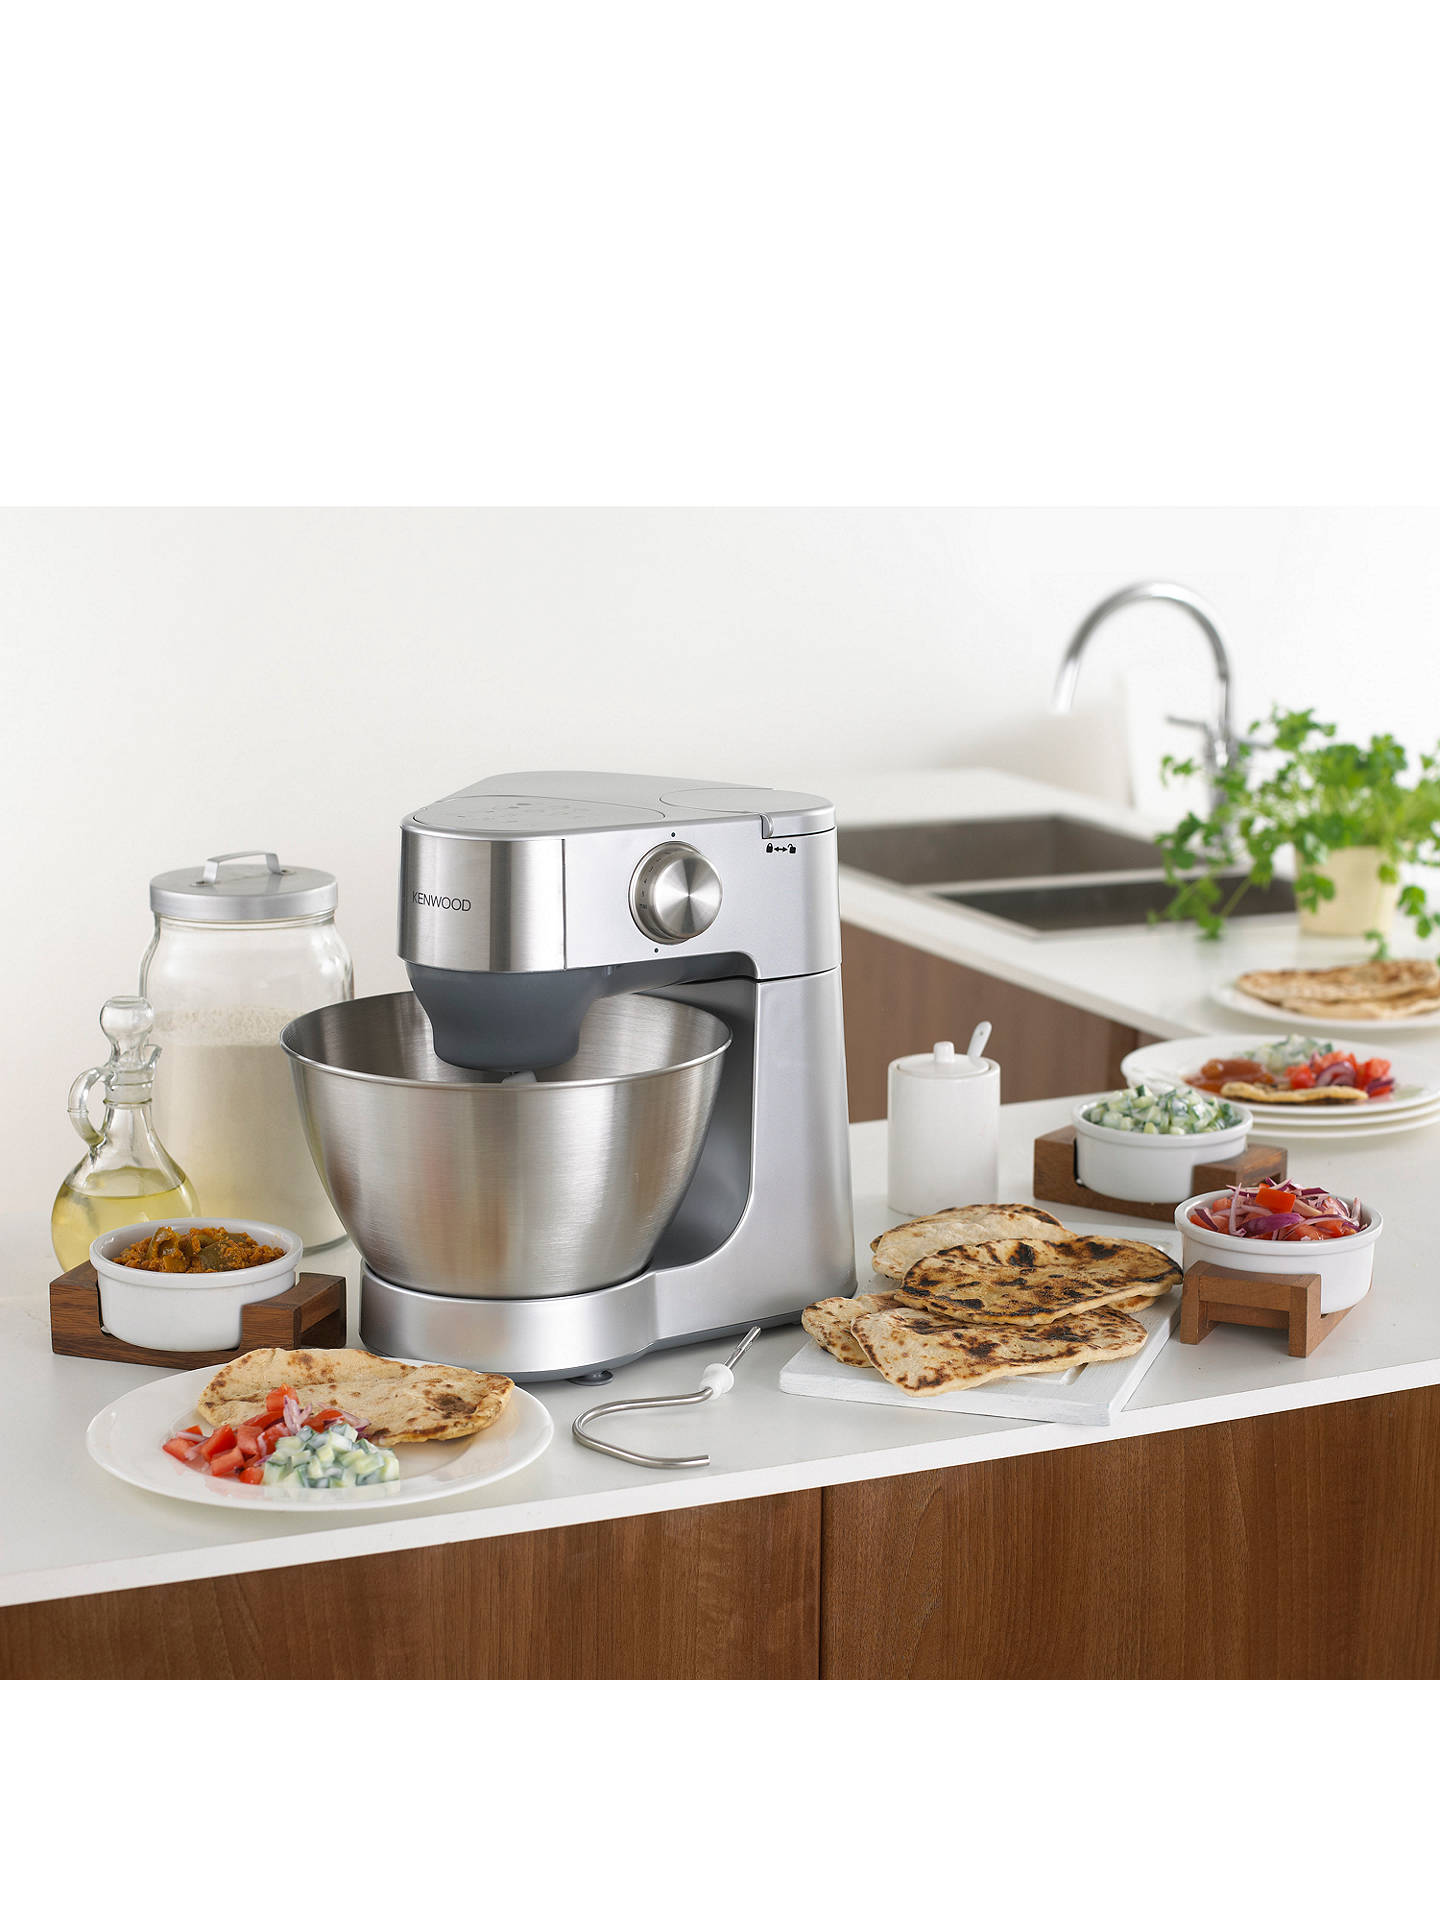 Buy Kenwood KM240 Prospero Stand Mixer Online at johnlewis.com